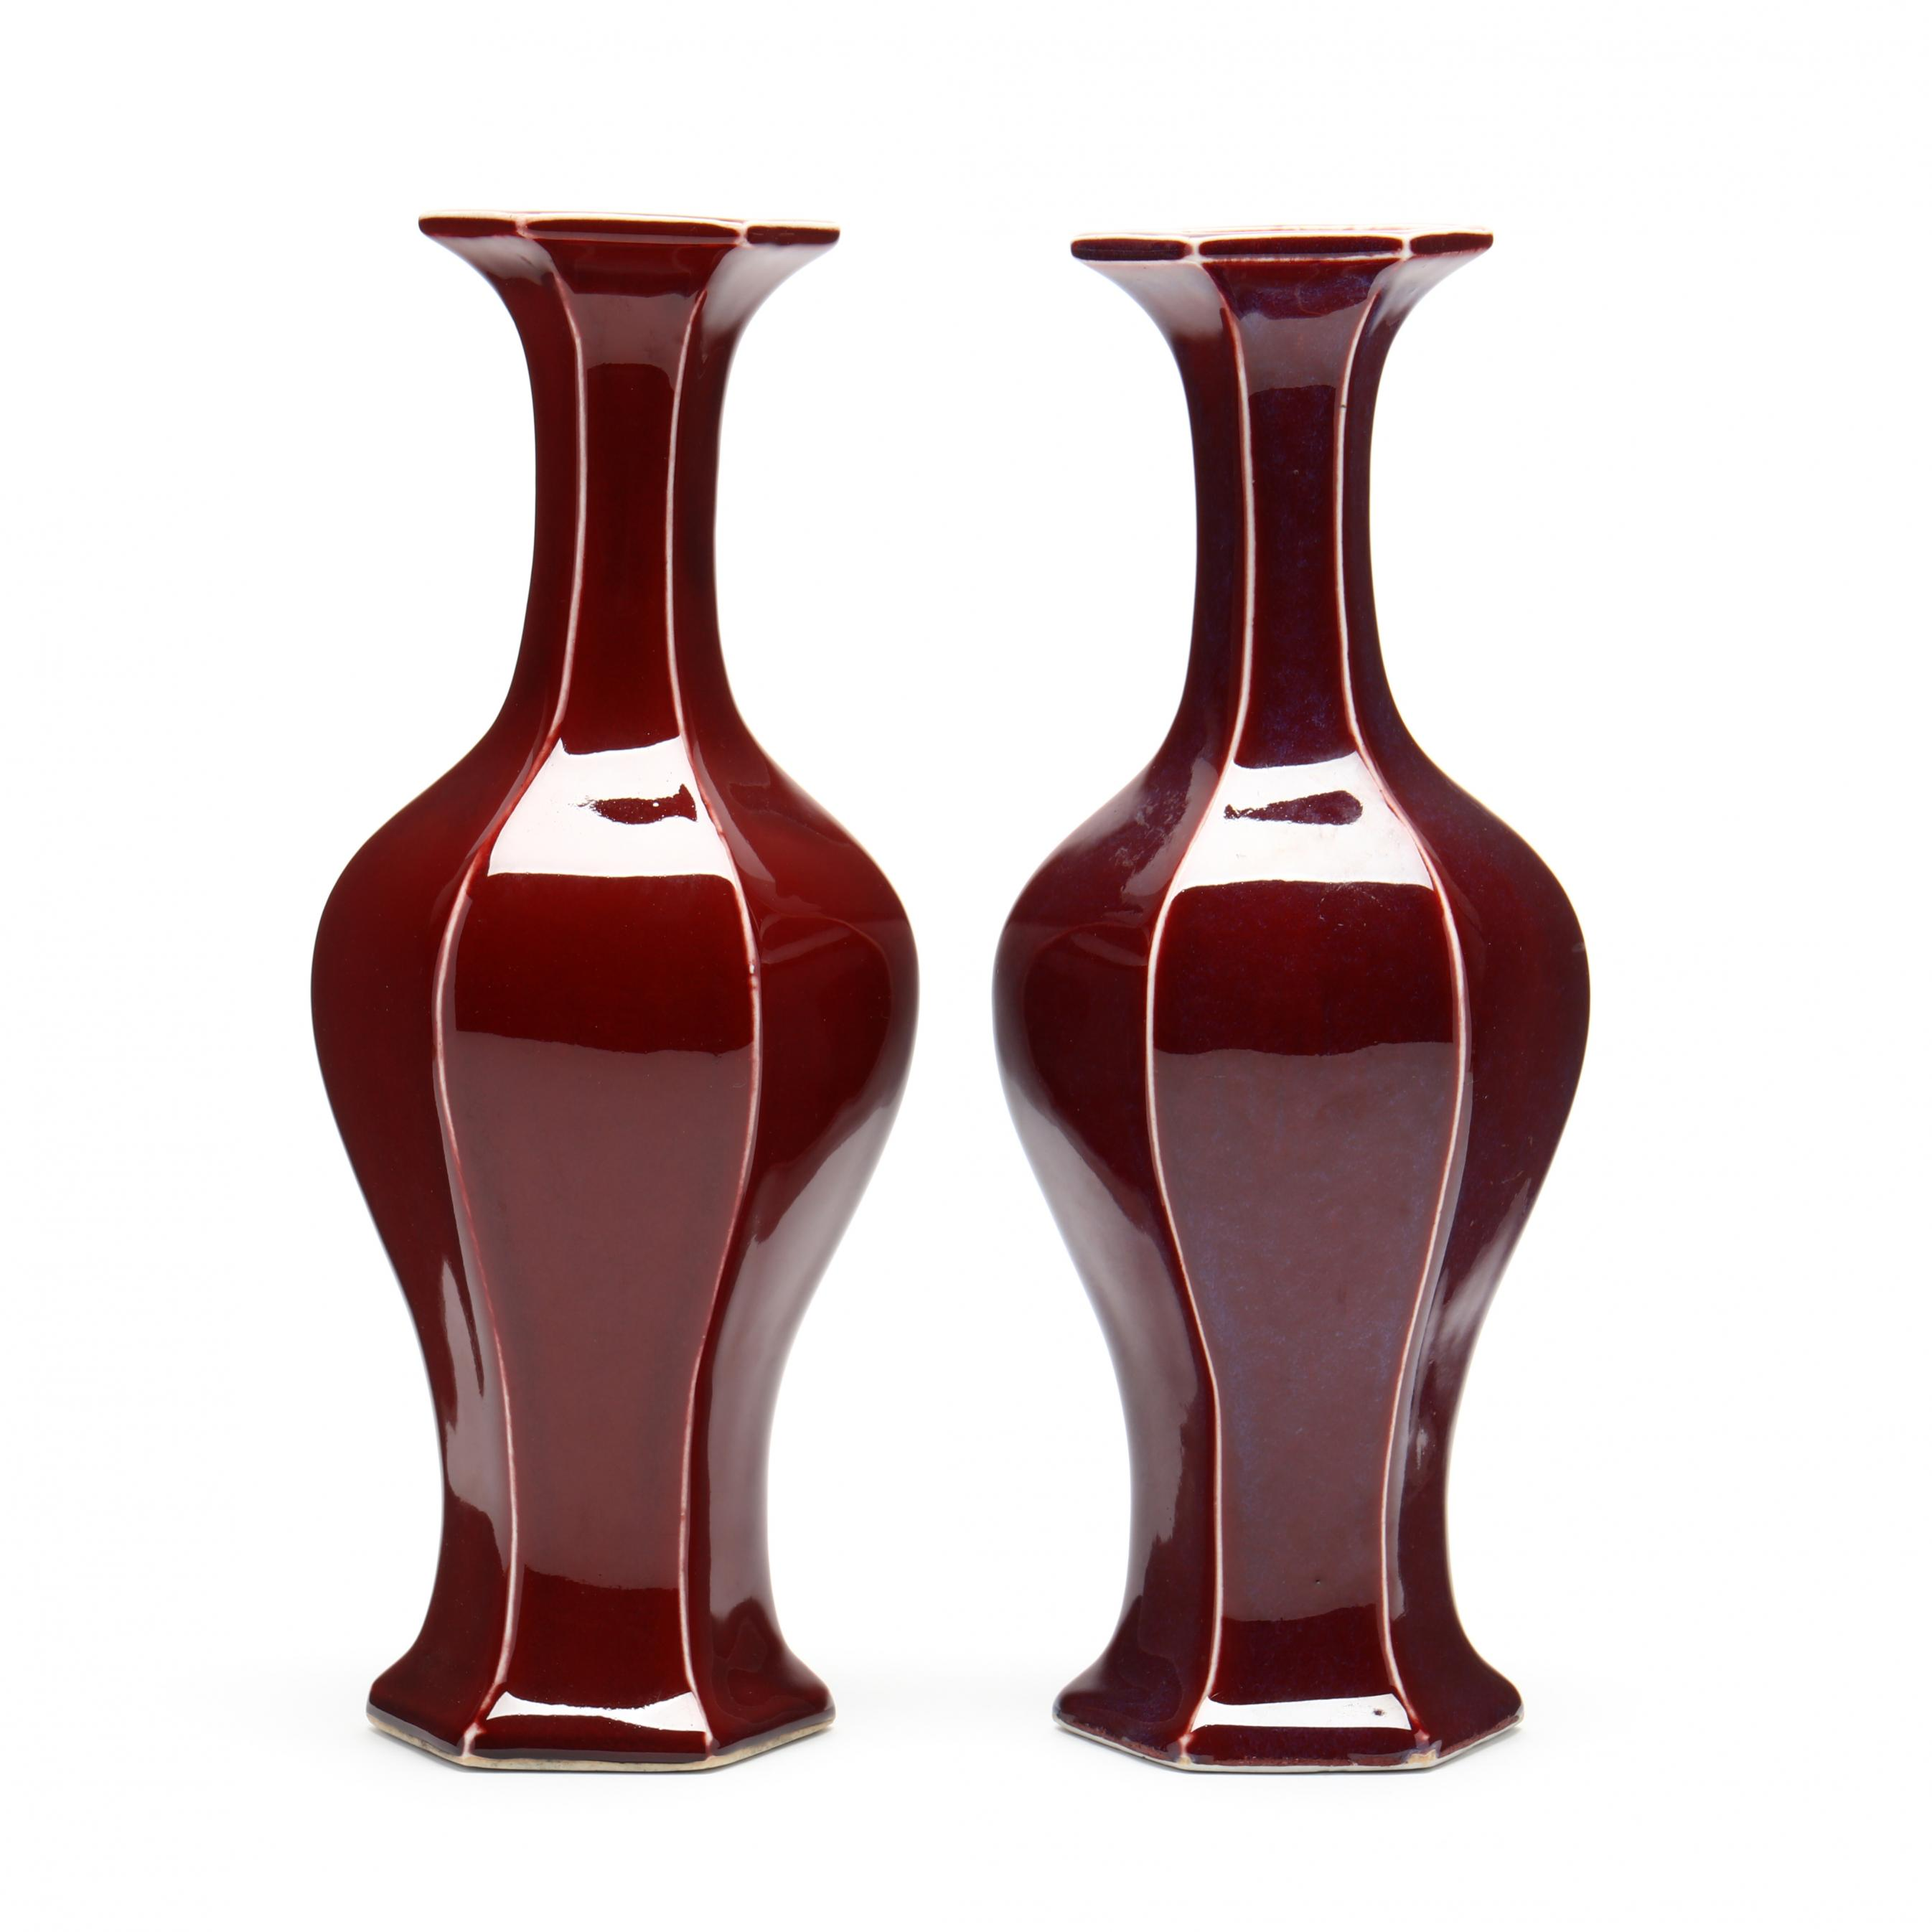 a-matched-pair-of-chinese-sang-de-boeuf-vases